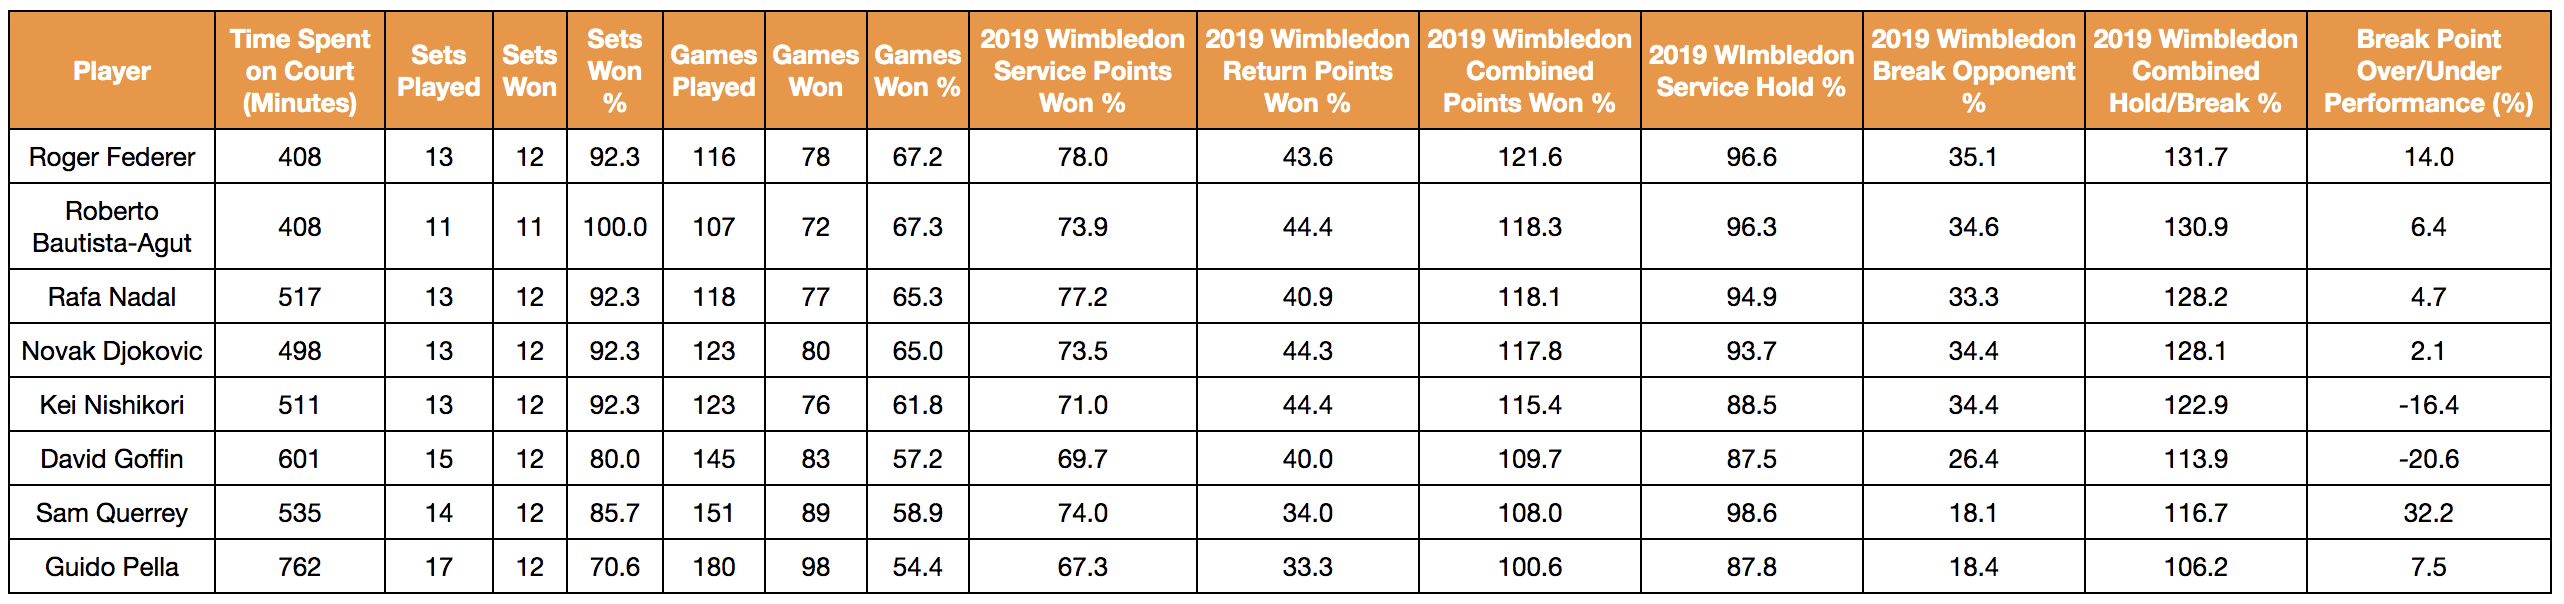 2019 Wimbledon Men's Singles Data